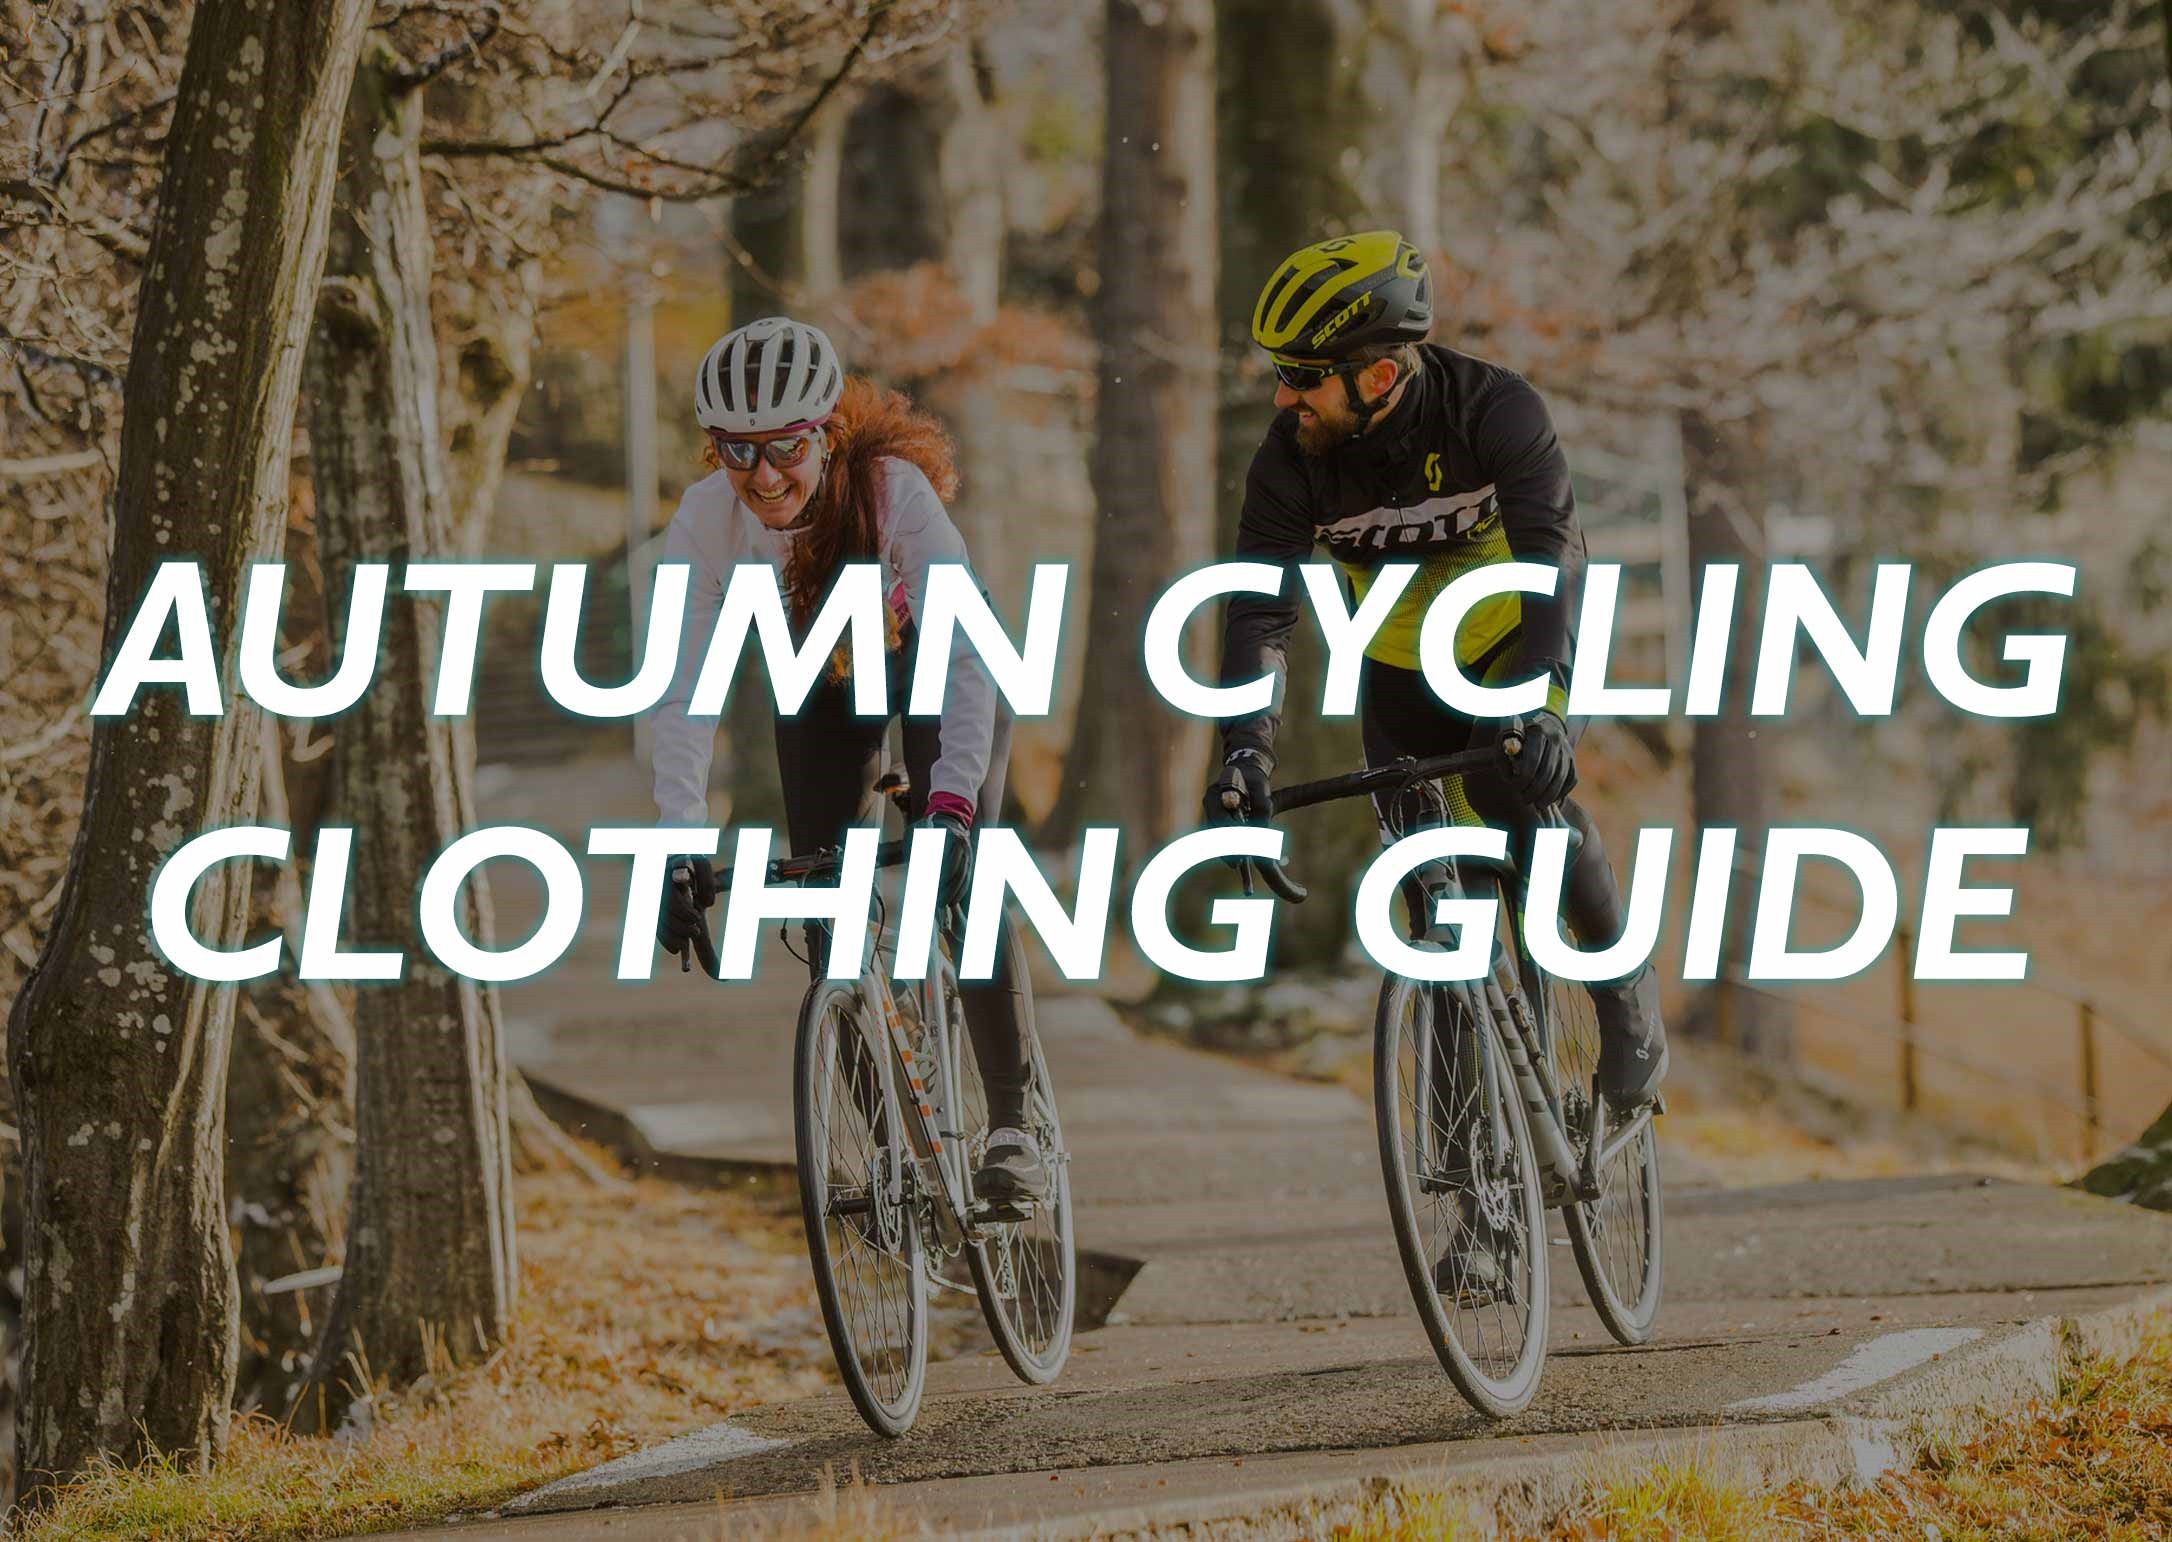 autumn-cycling-clothing-guide-tile